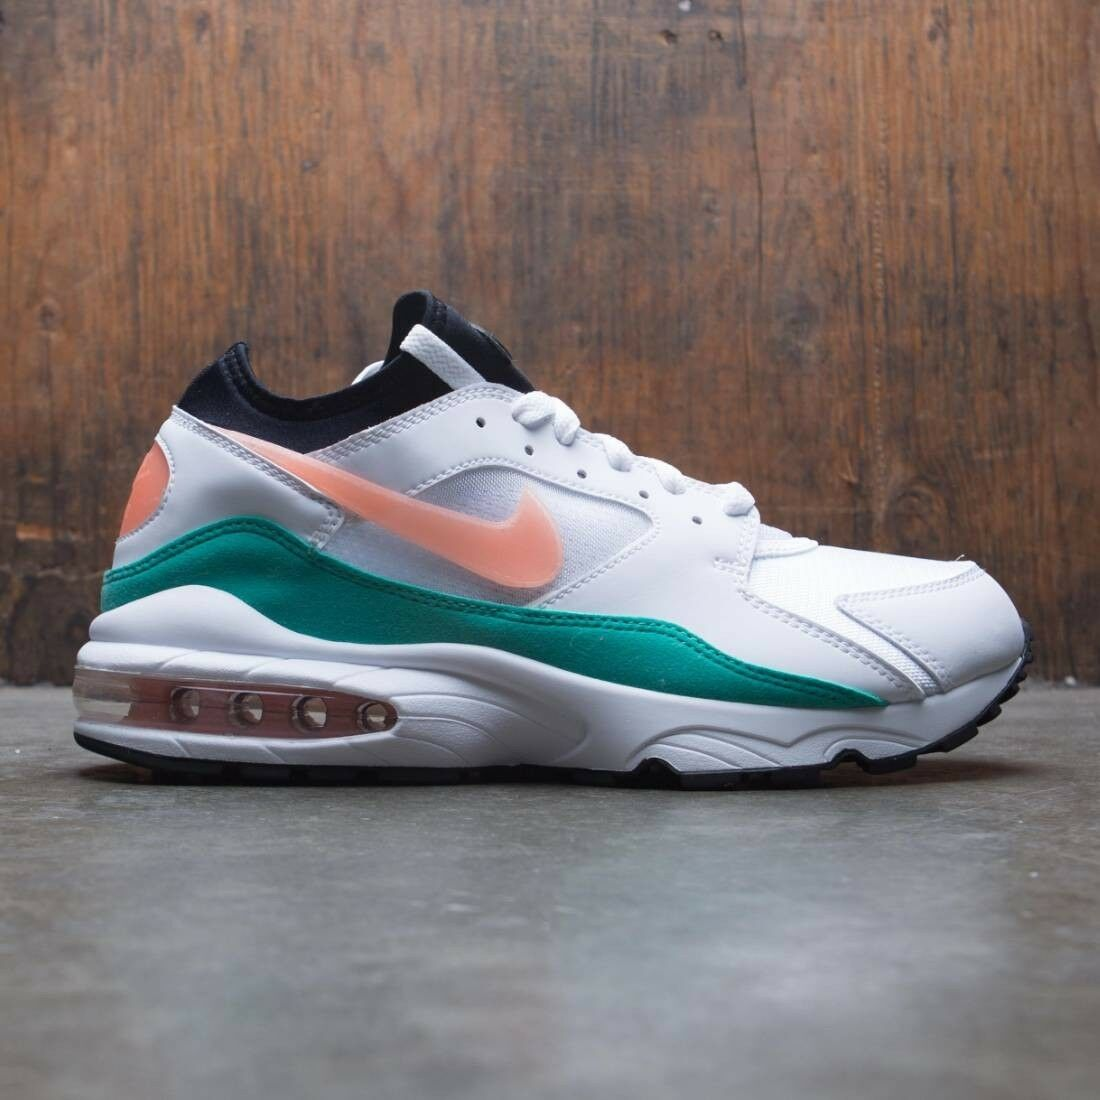 2018 Nike Air Max 93 Retro Watermelon Size 9.5. 306551-105 1 90 95 97